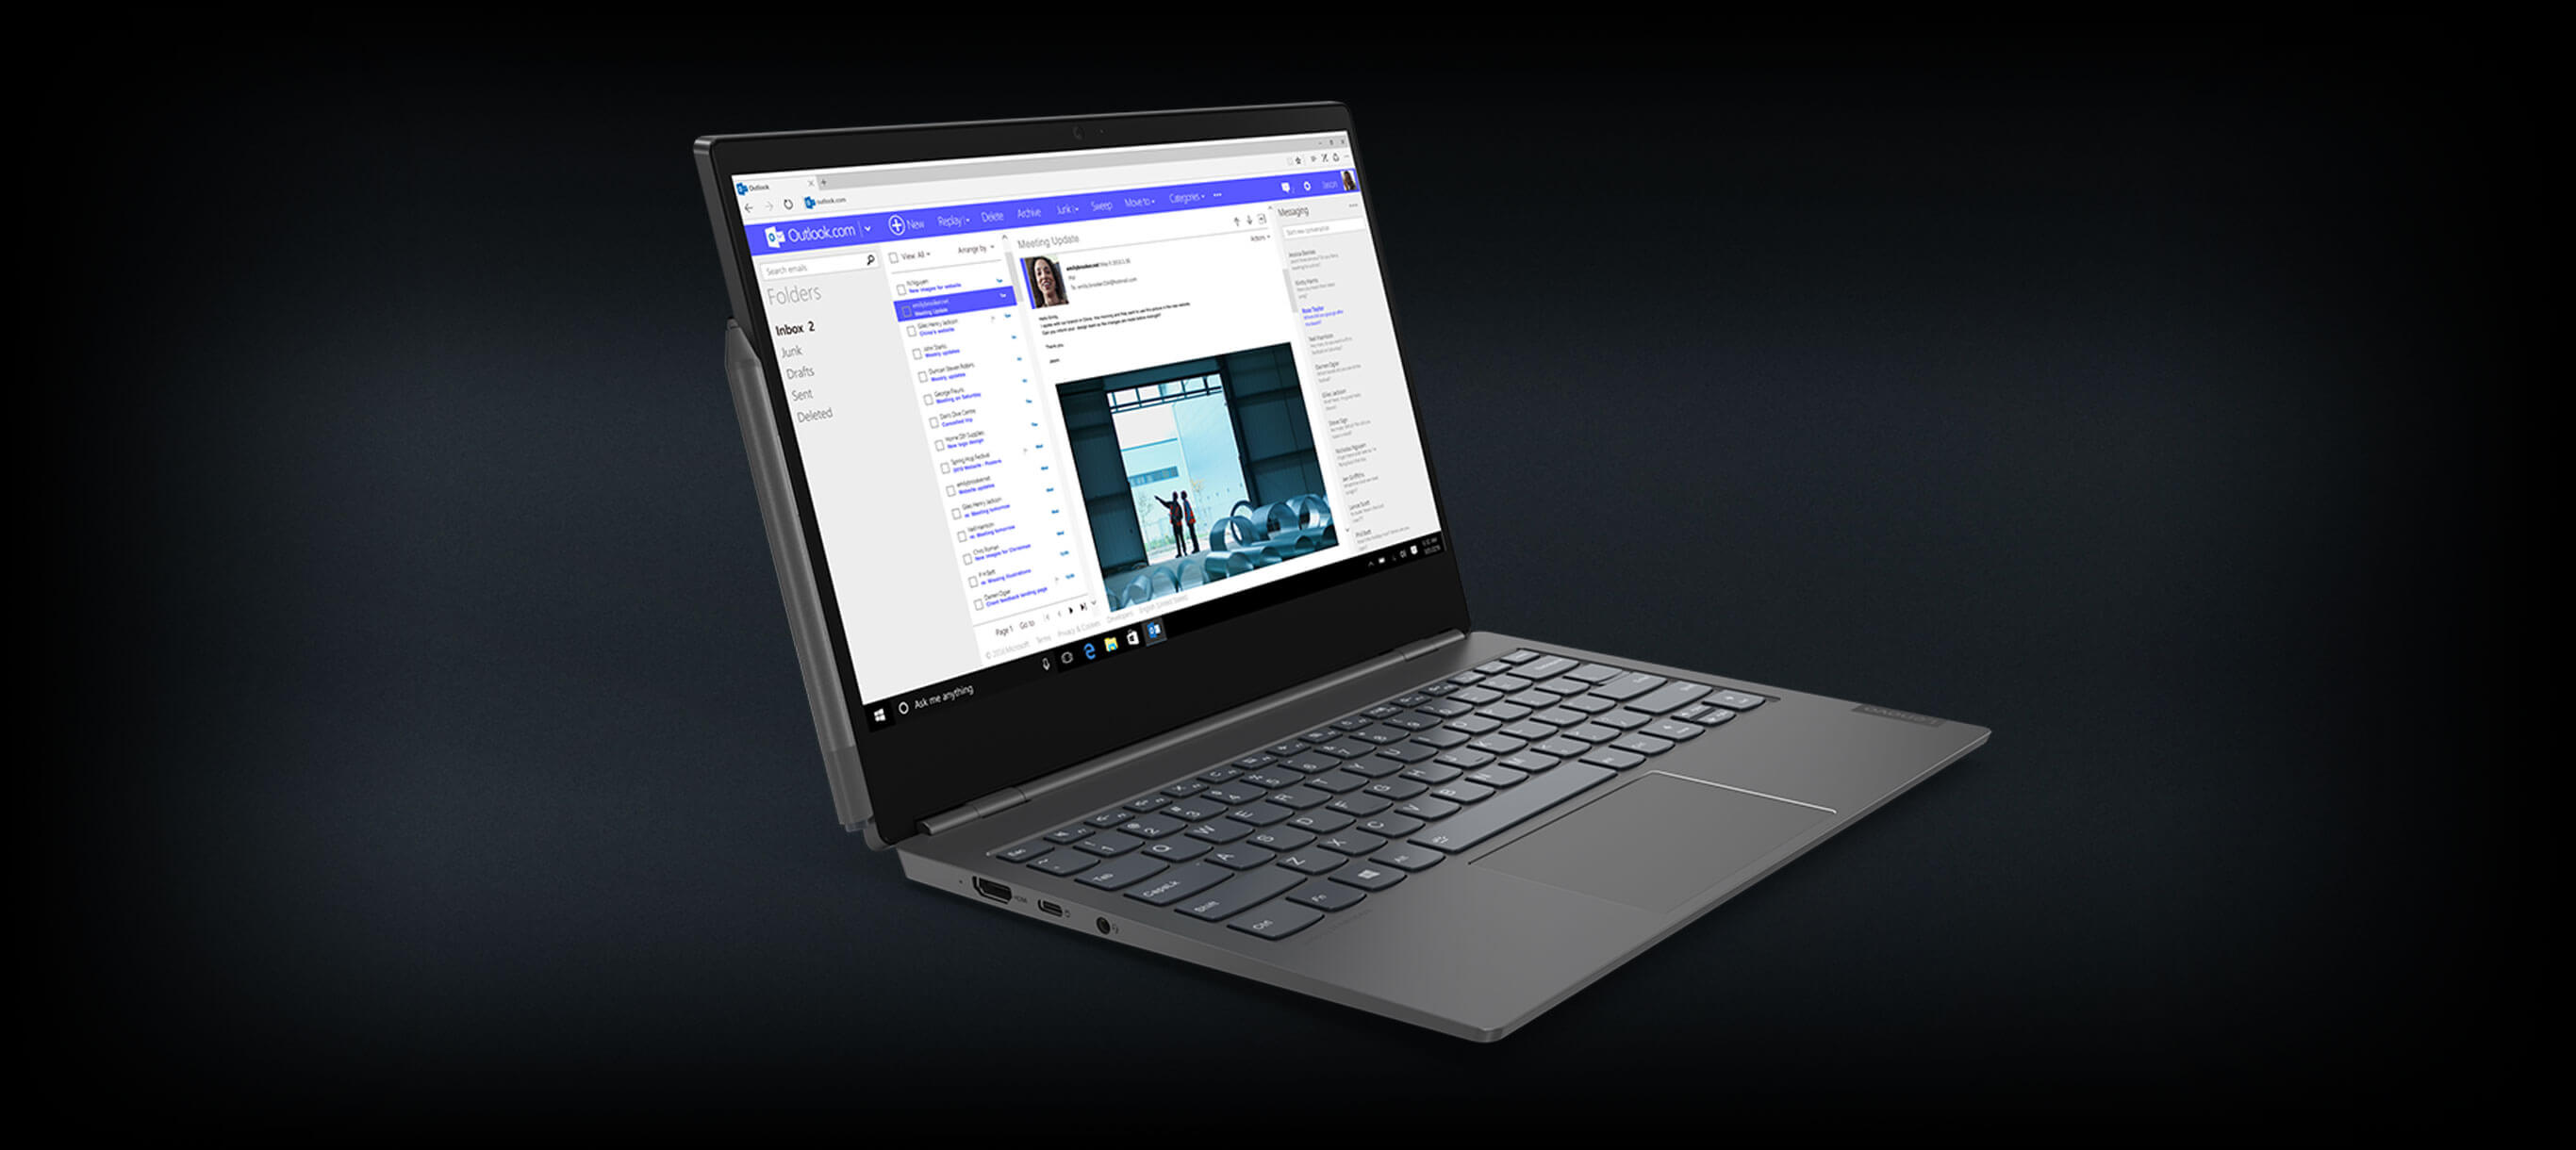 thinkbook plus laptop image